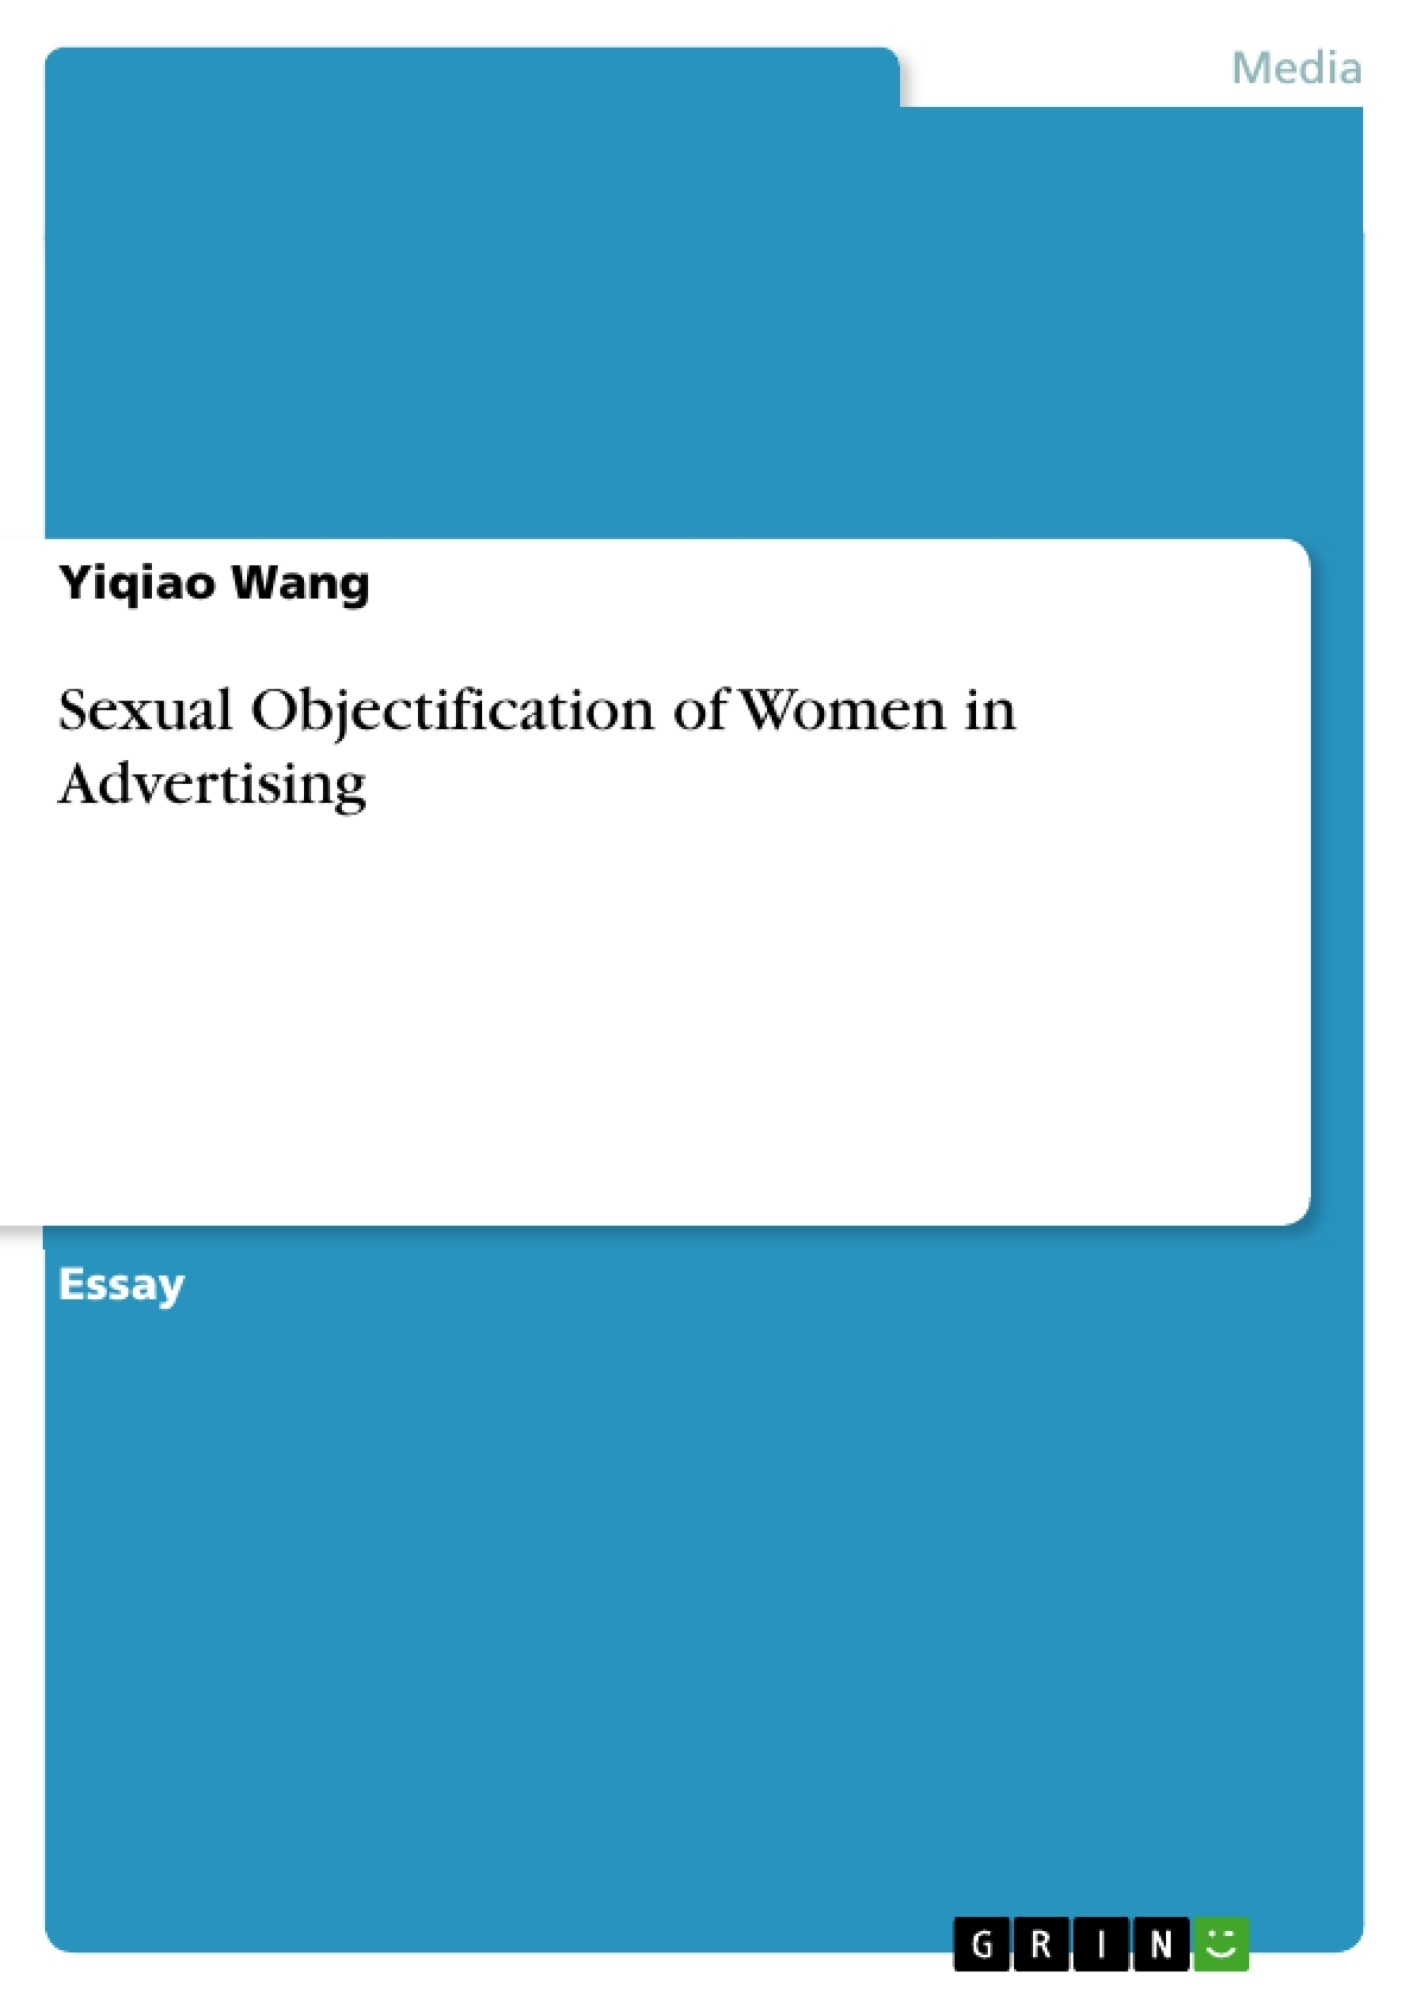 Title: Sexual Objectification of Women in Advertising